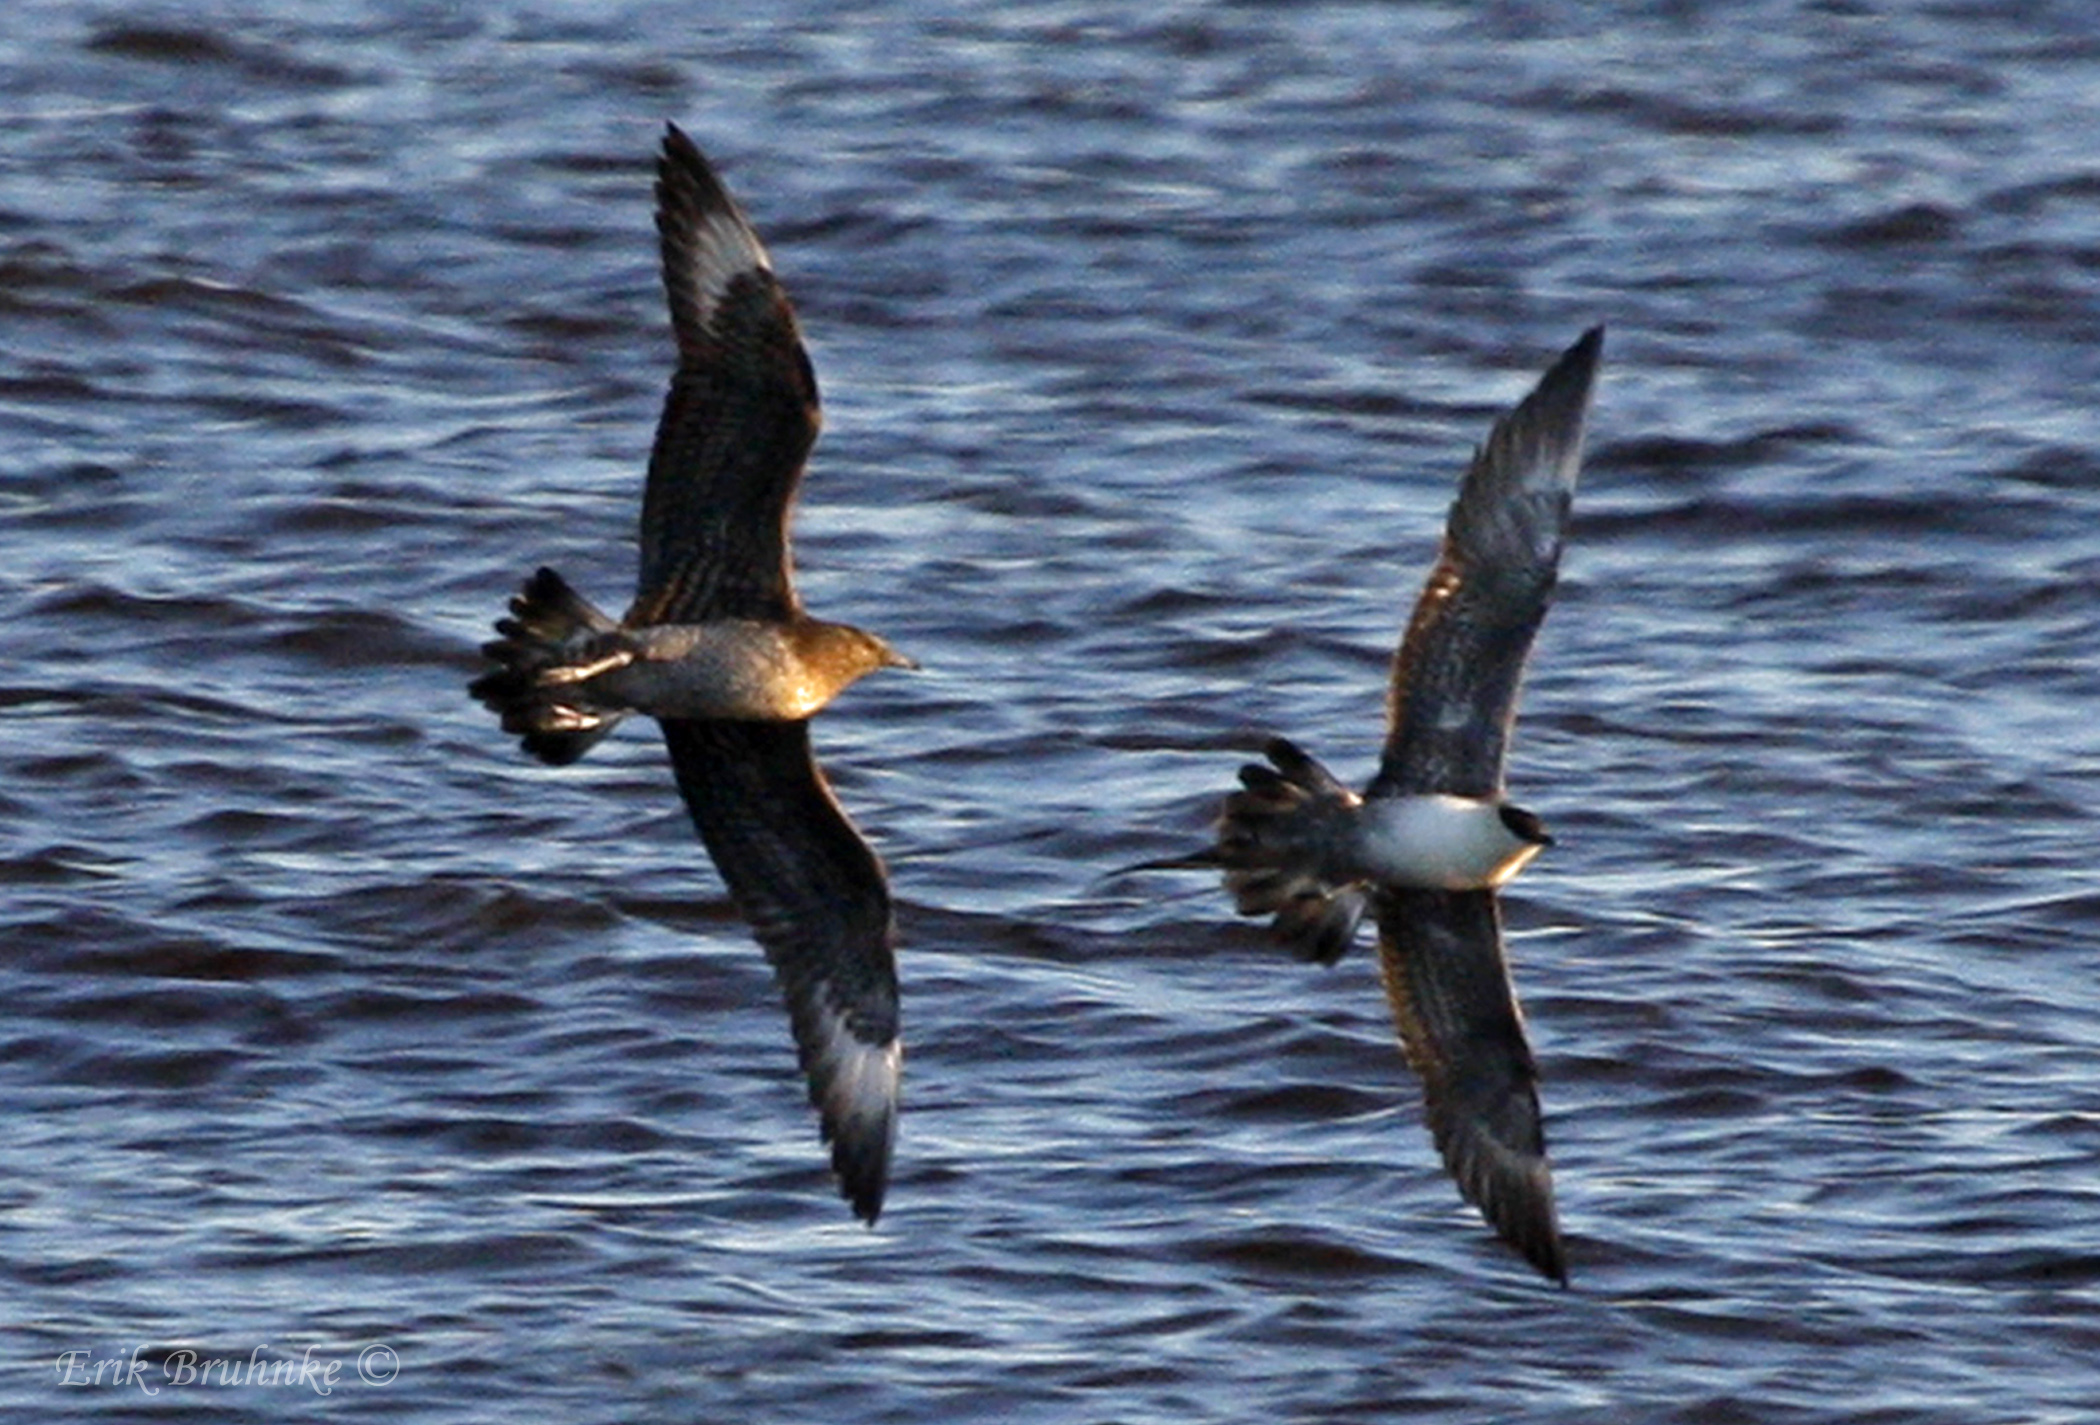 Parasitic Jaeger chasing a Long-tailed Jaeger. Photographed from Wisconsin Point - Superior, WI